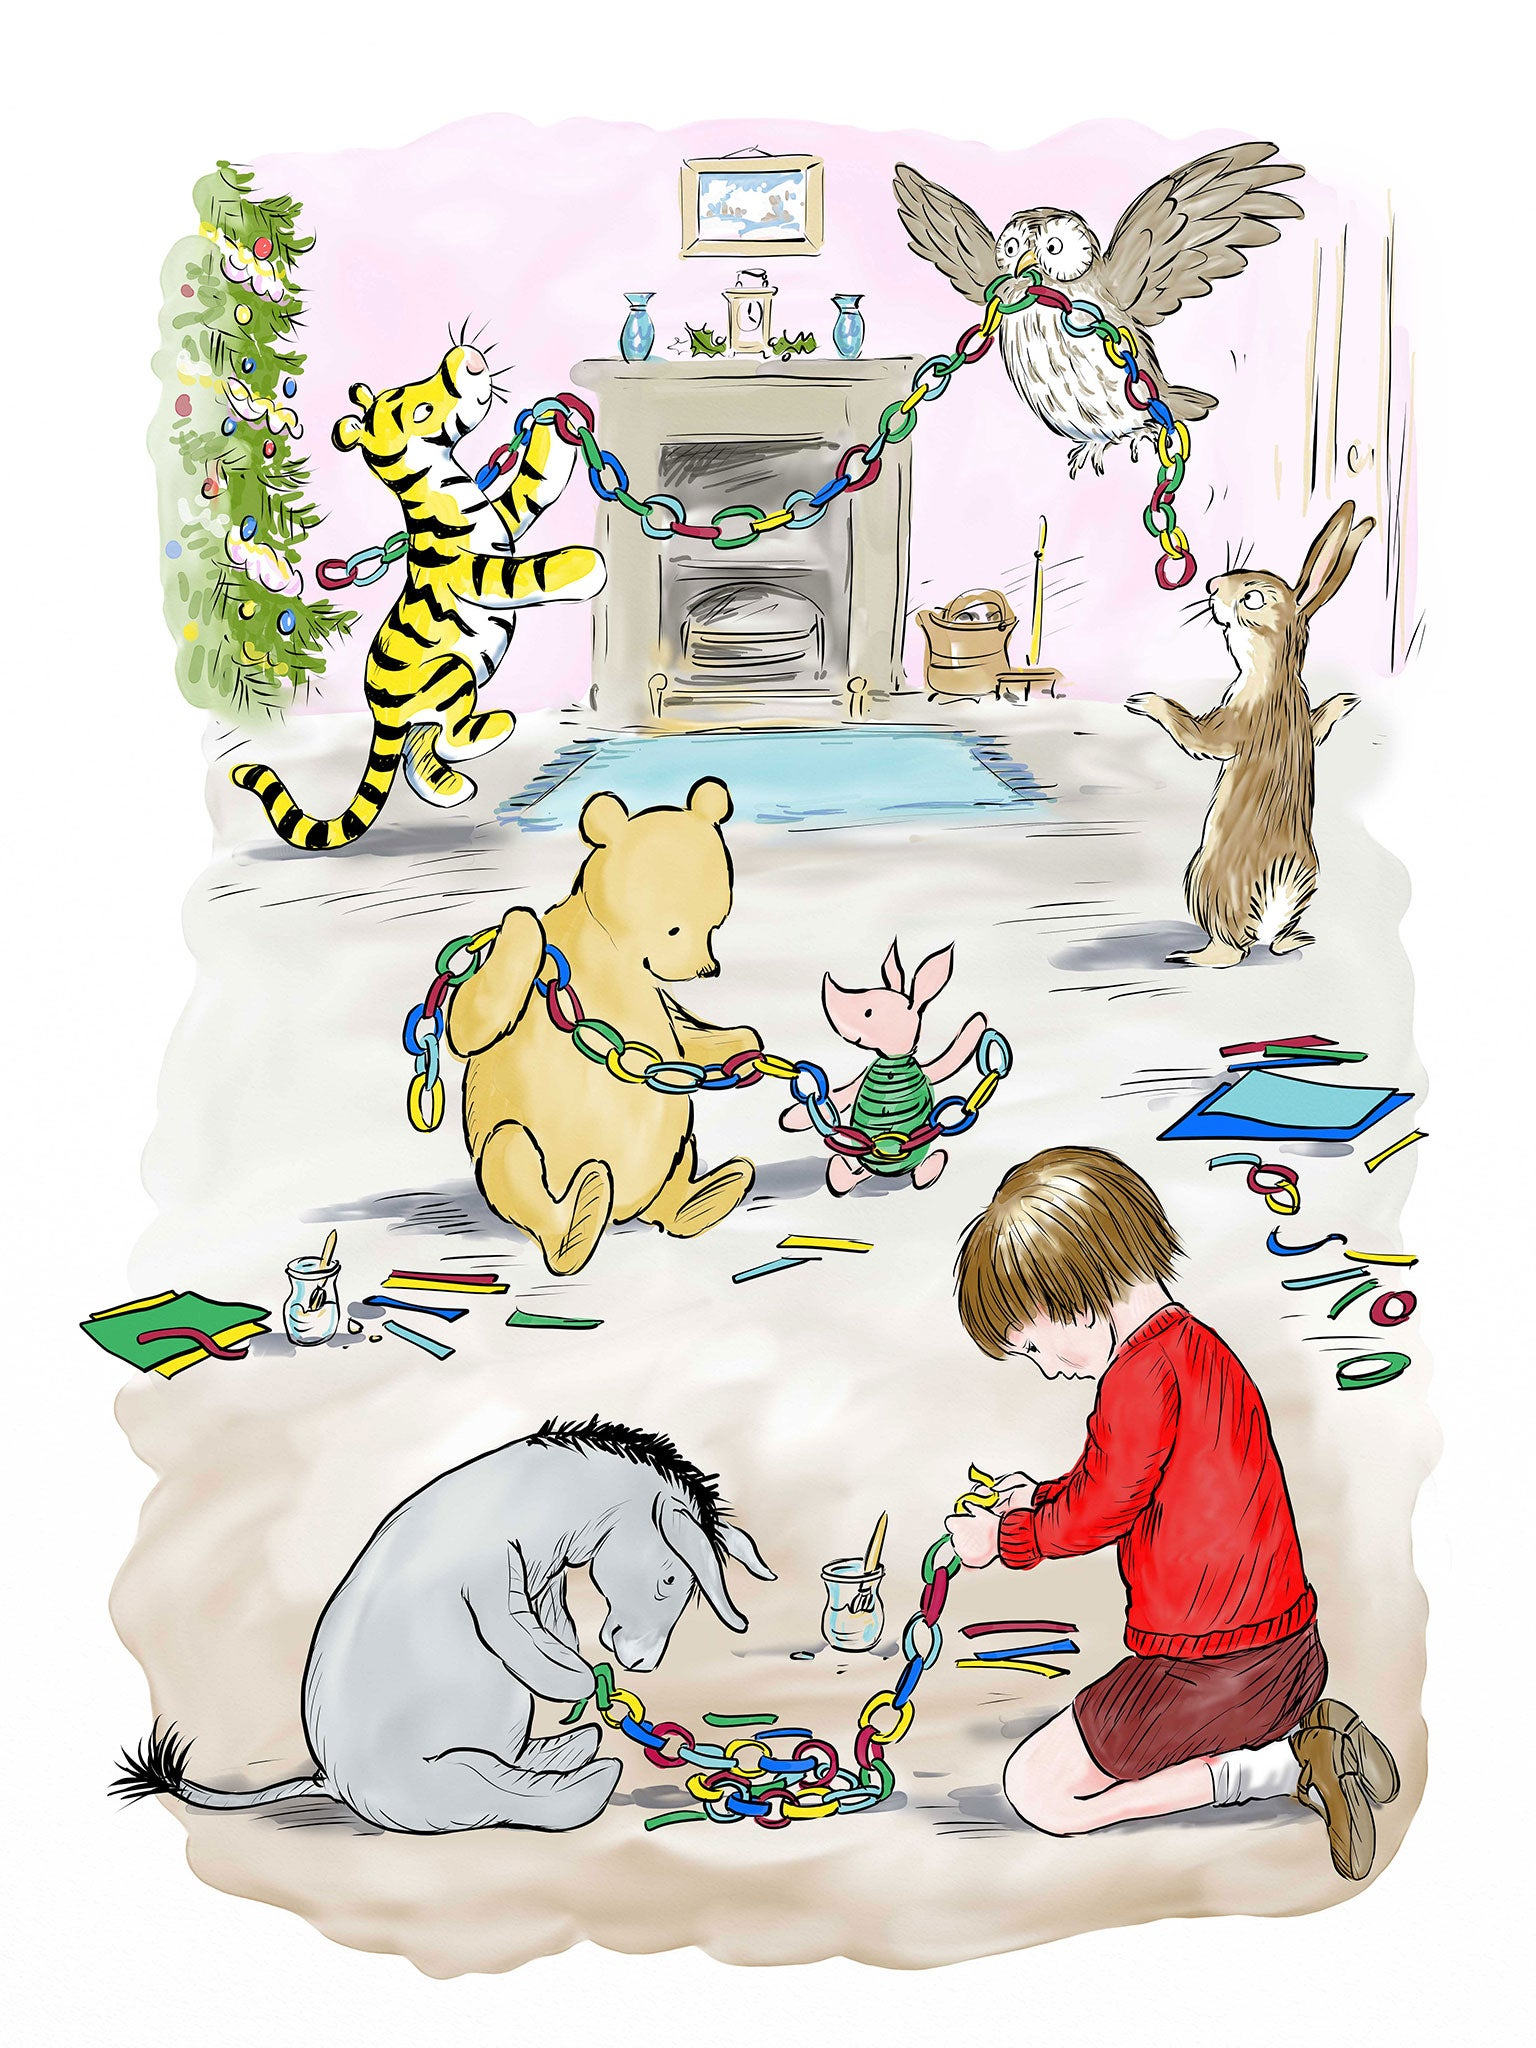 New Winnie the Pooh illustrations celebrate Christmas traditions ...